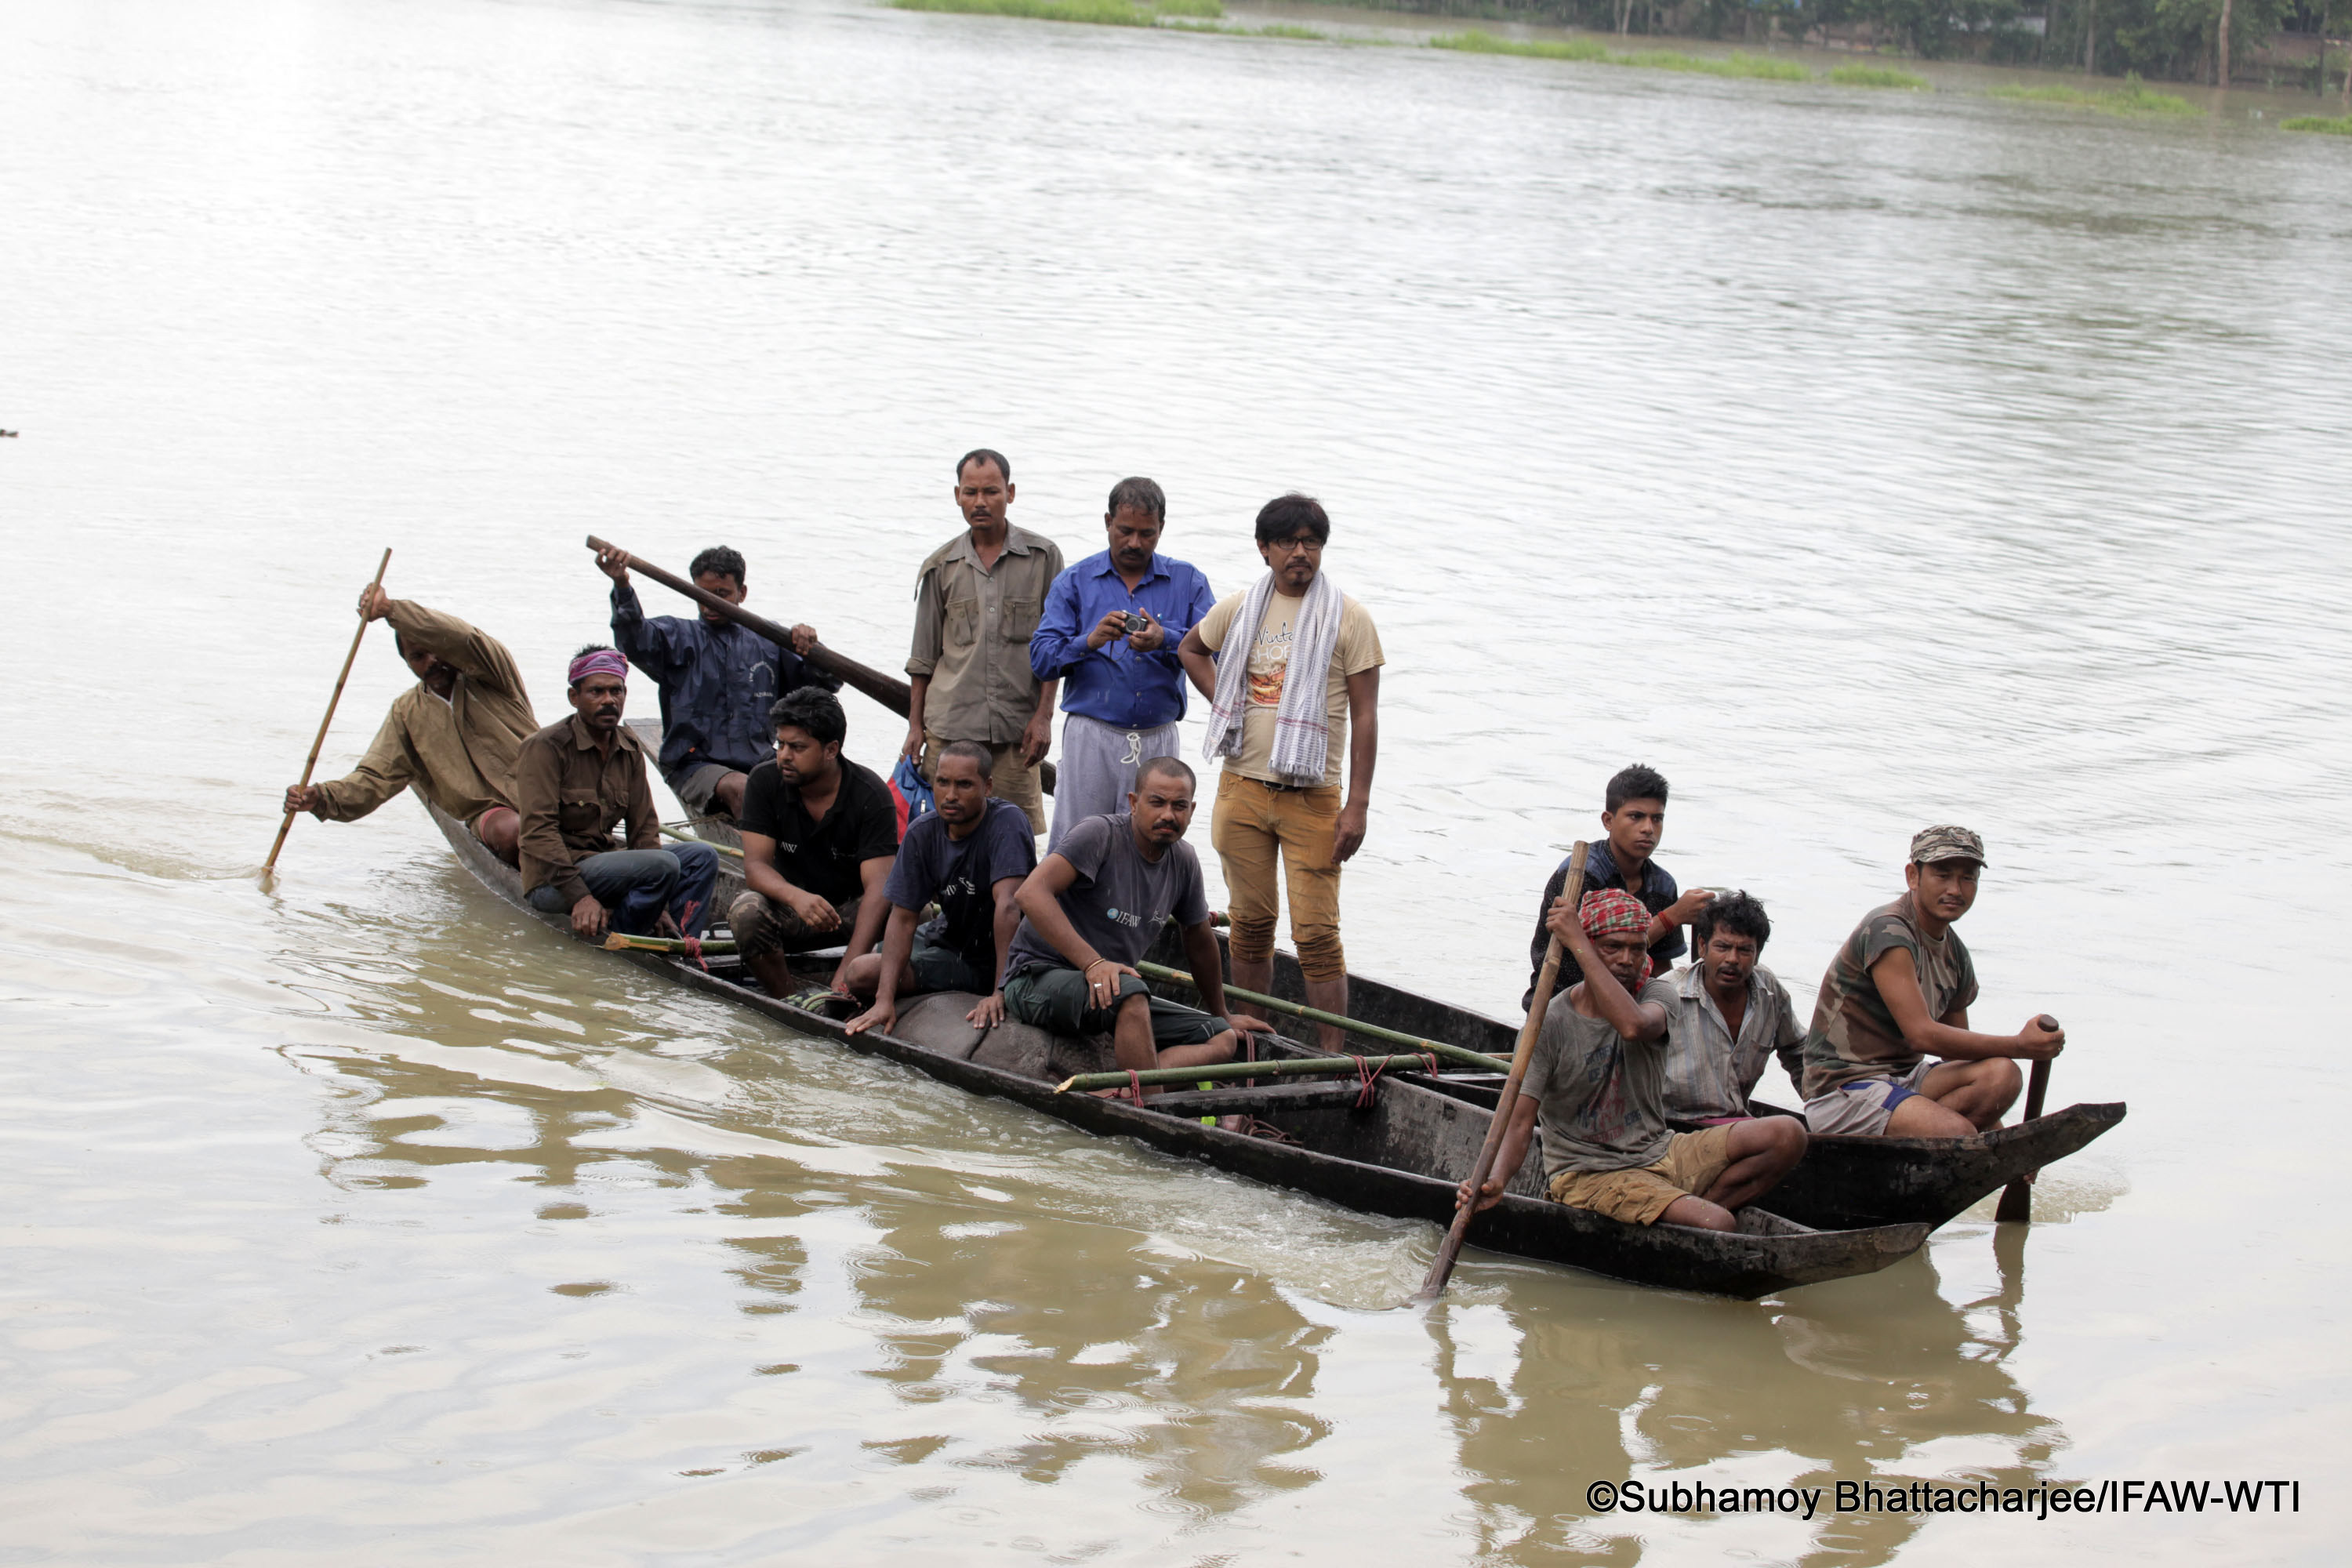 IFAW-WTI MVS team rescuing a rhino calf from flood affected Diphalu Pathar village with the help of Kaziranga forest staff, local villagers and NGO members of KNEECA on Wednesday, 27th July 2016. Photo credit: Subhamoy Bhattacharjee/IFAW-WTI.